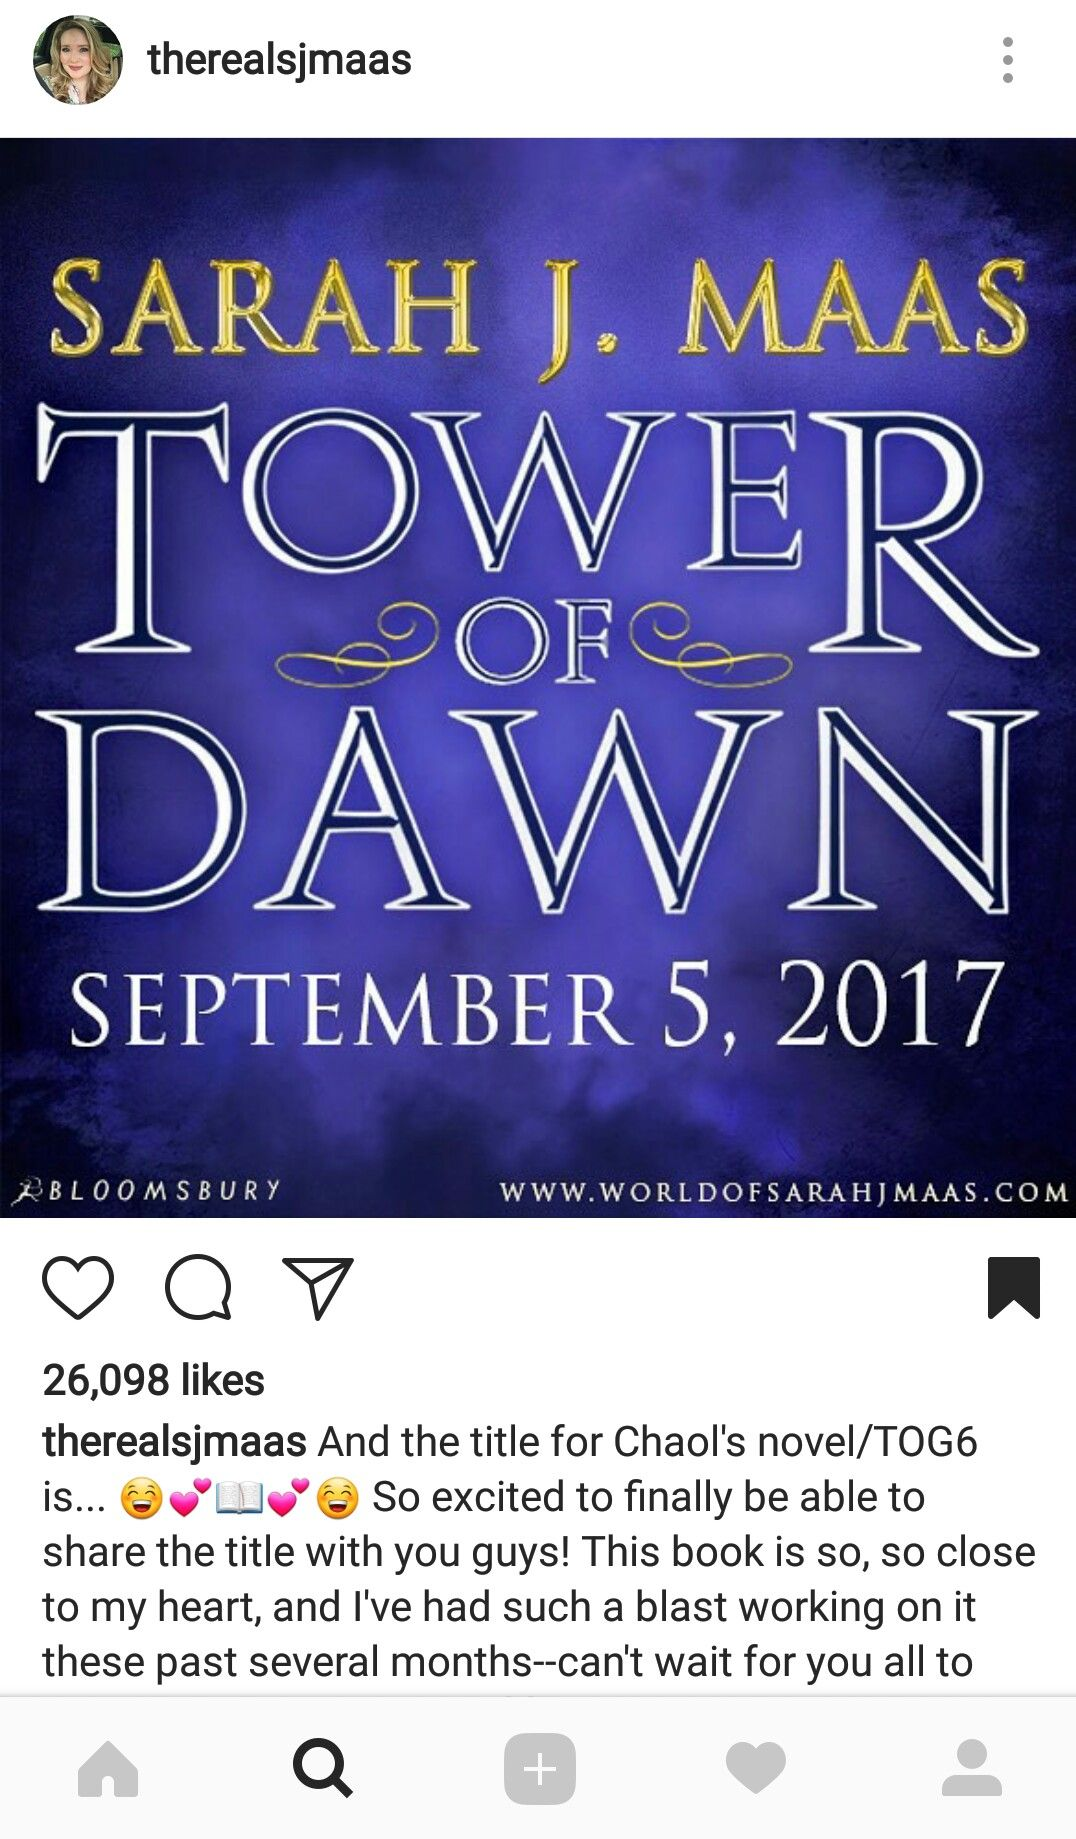 The Chaol Novel Is Officially Titled Tower Of Dawn!